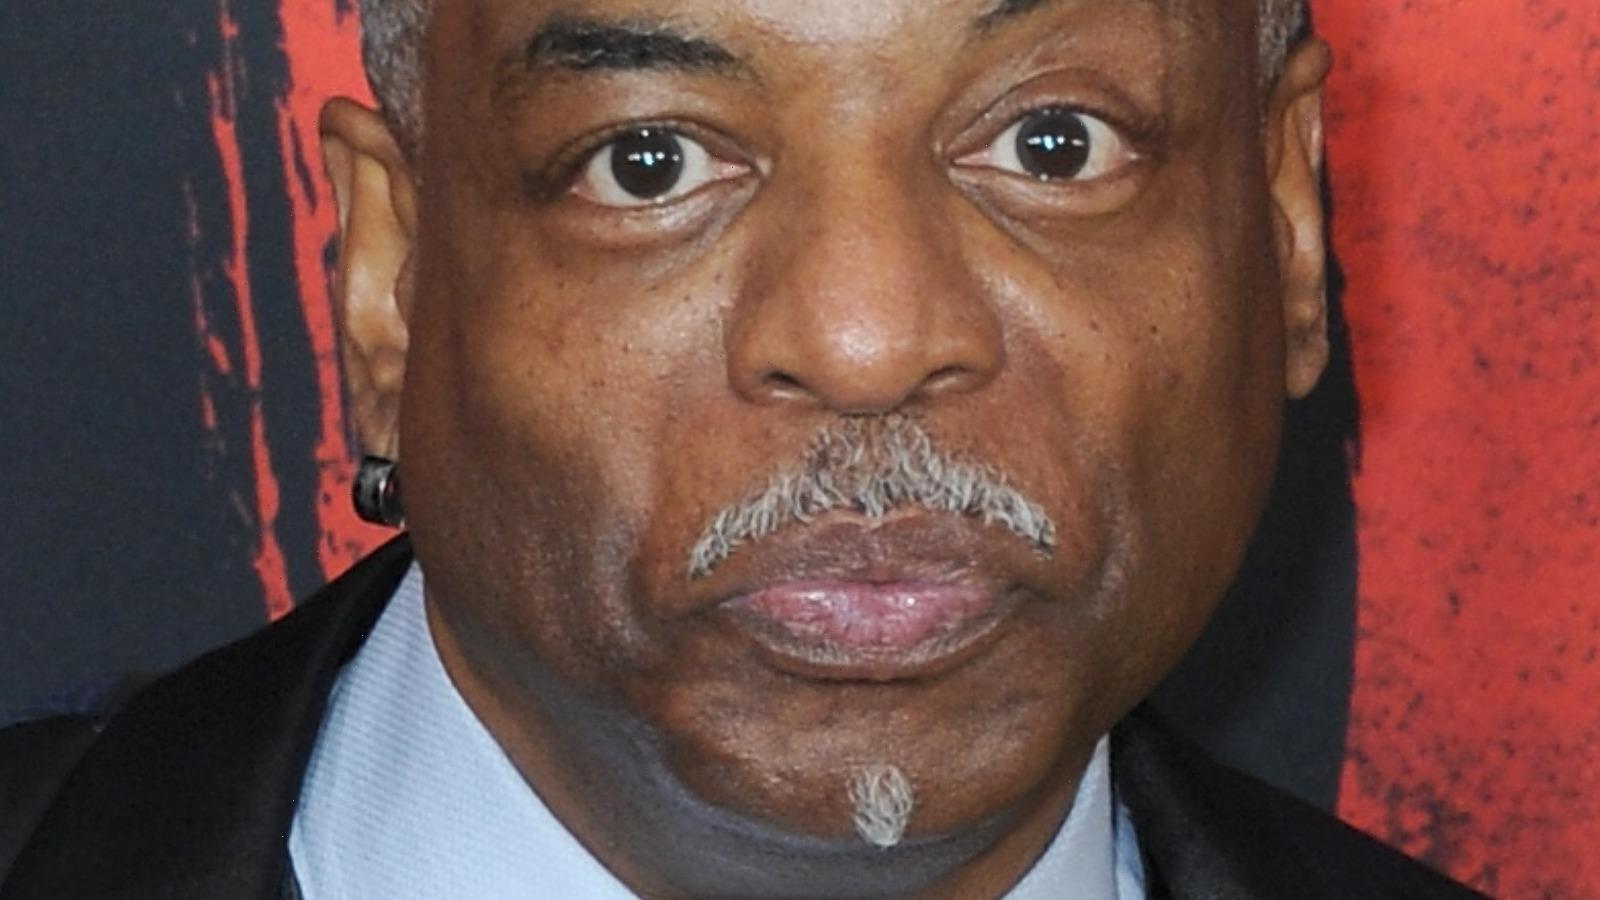 LeVar Burton Once Had This To Say About Donald Trump